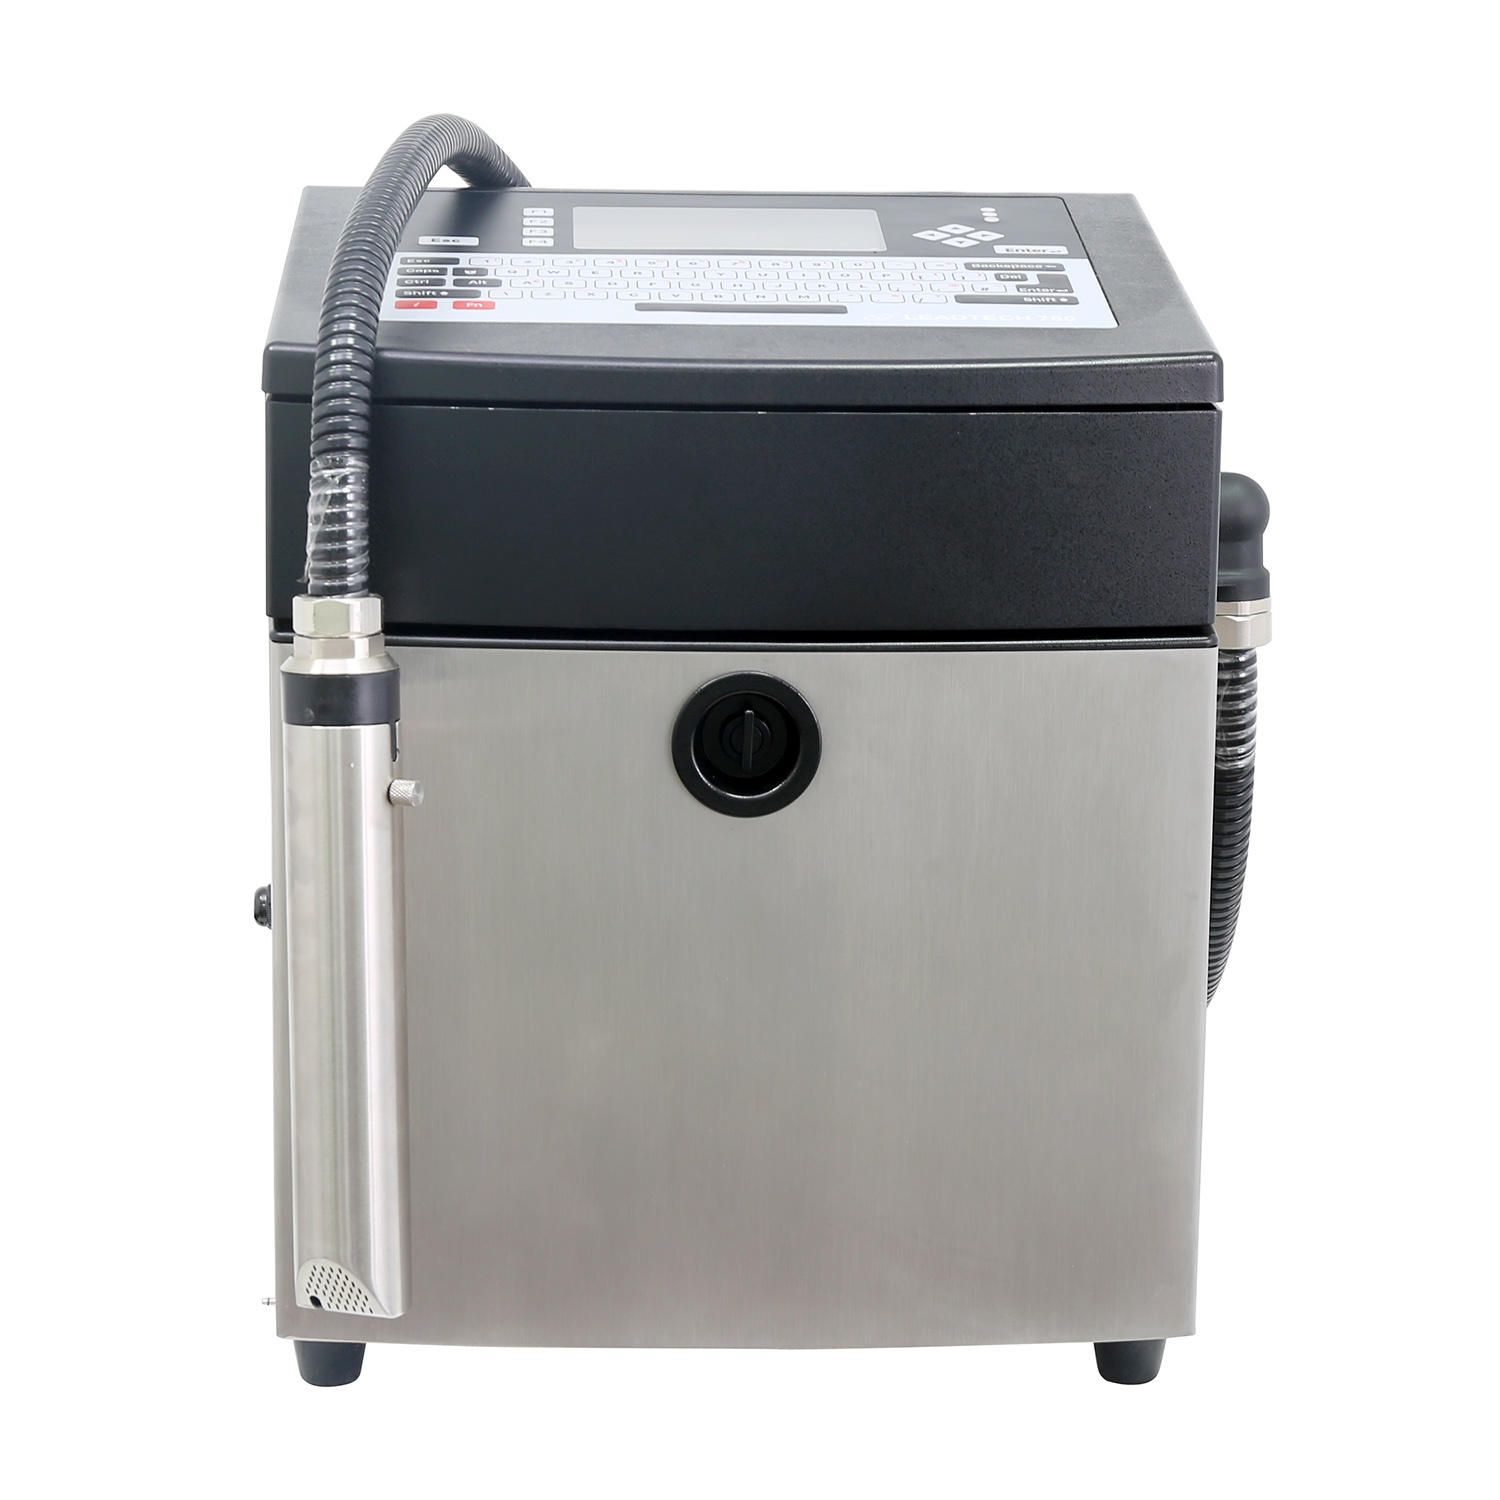 Lead Tech Lt760 High Speed Printer for Dates